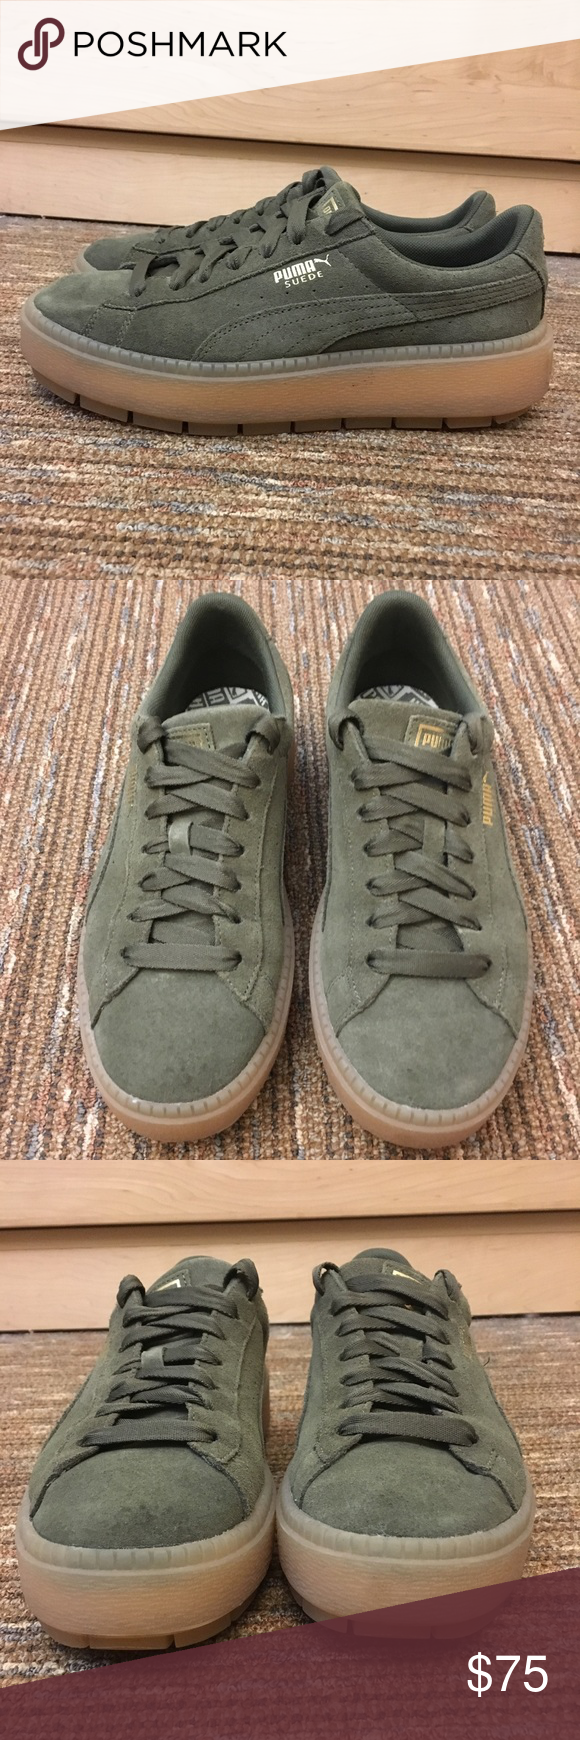 best cheap 91a17 ba015 PUMA Suede Platform Trace Olive green suede, size 8.5 ...